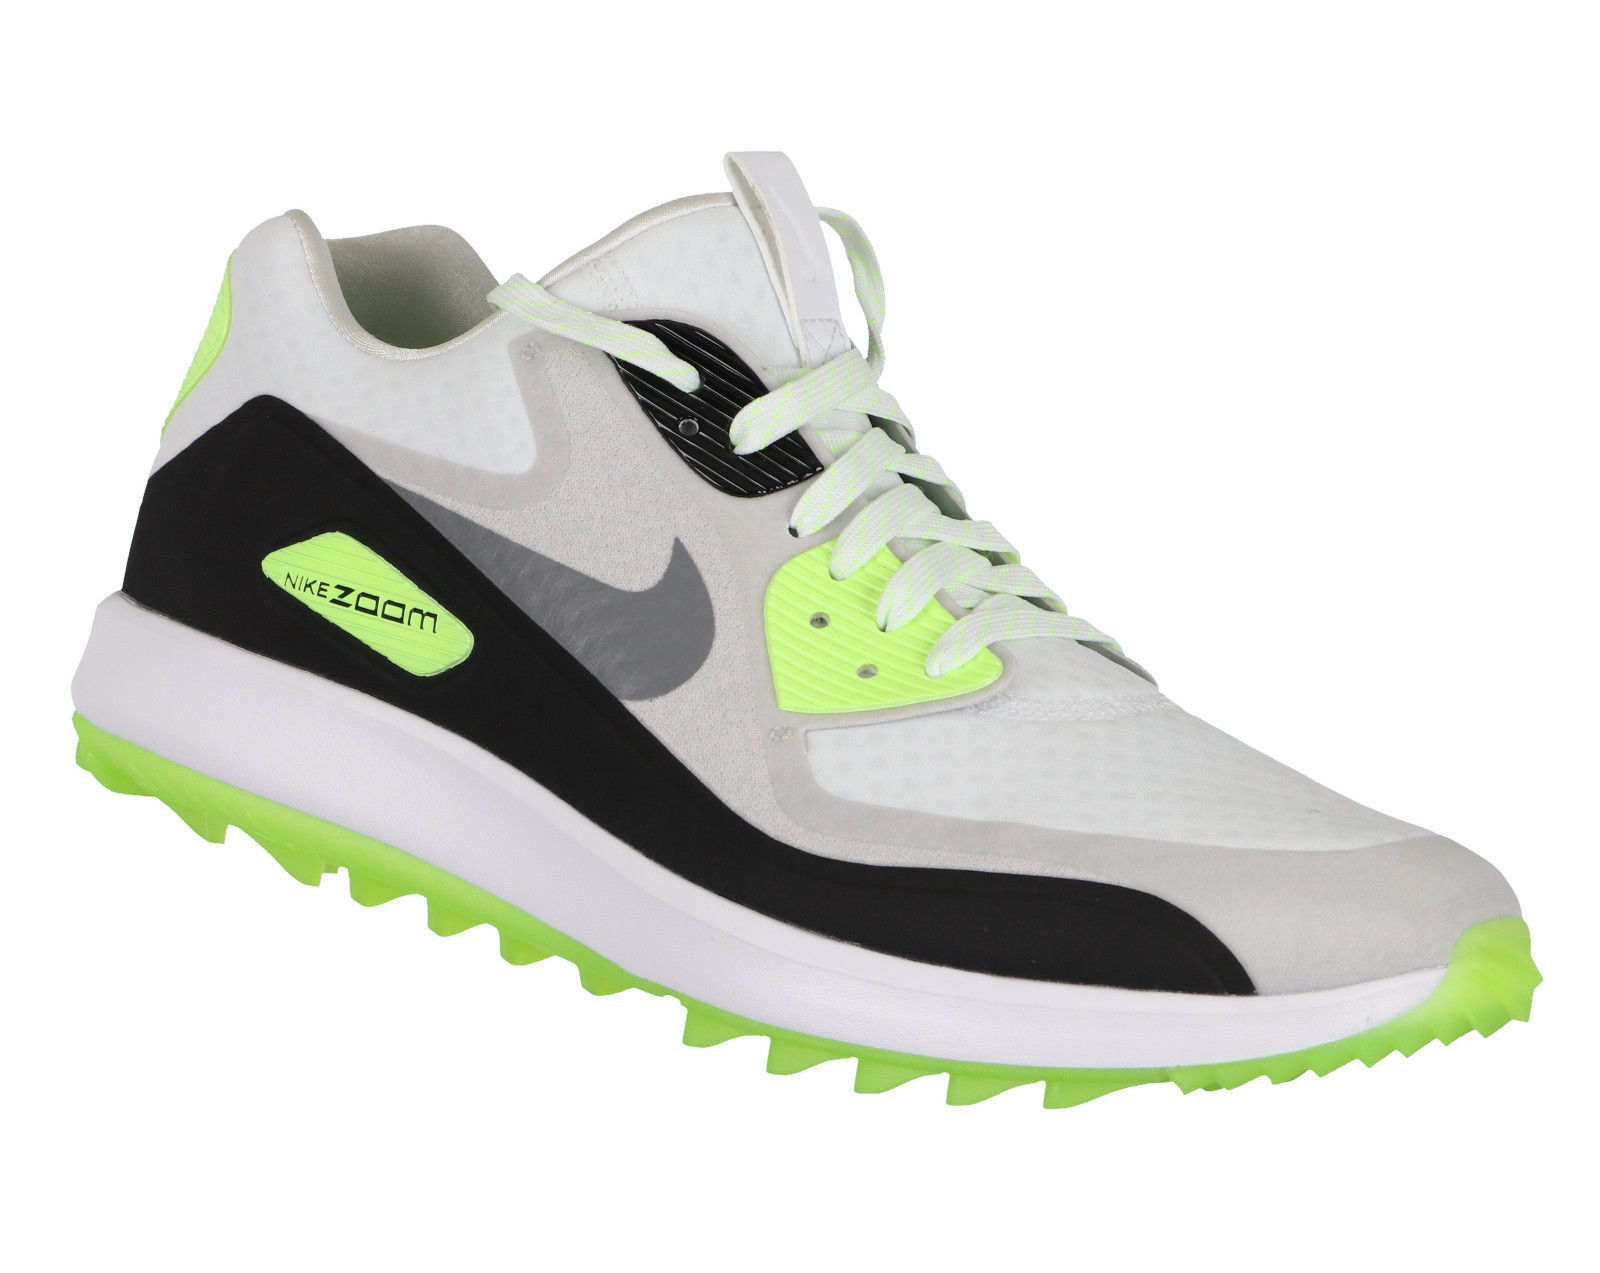 c21690d506dcb Nike Air Zoom Golf Shoes White  Nike air zoom precision golf shoes ...